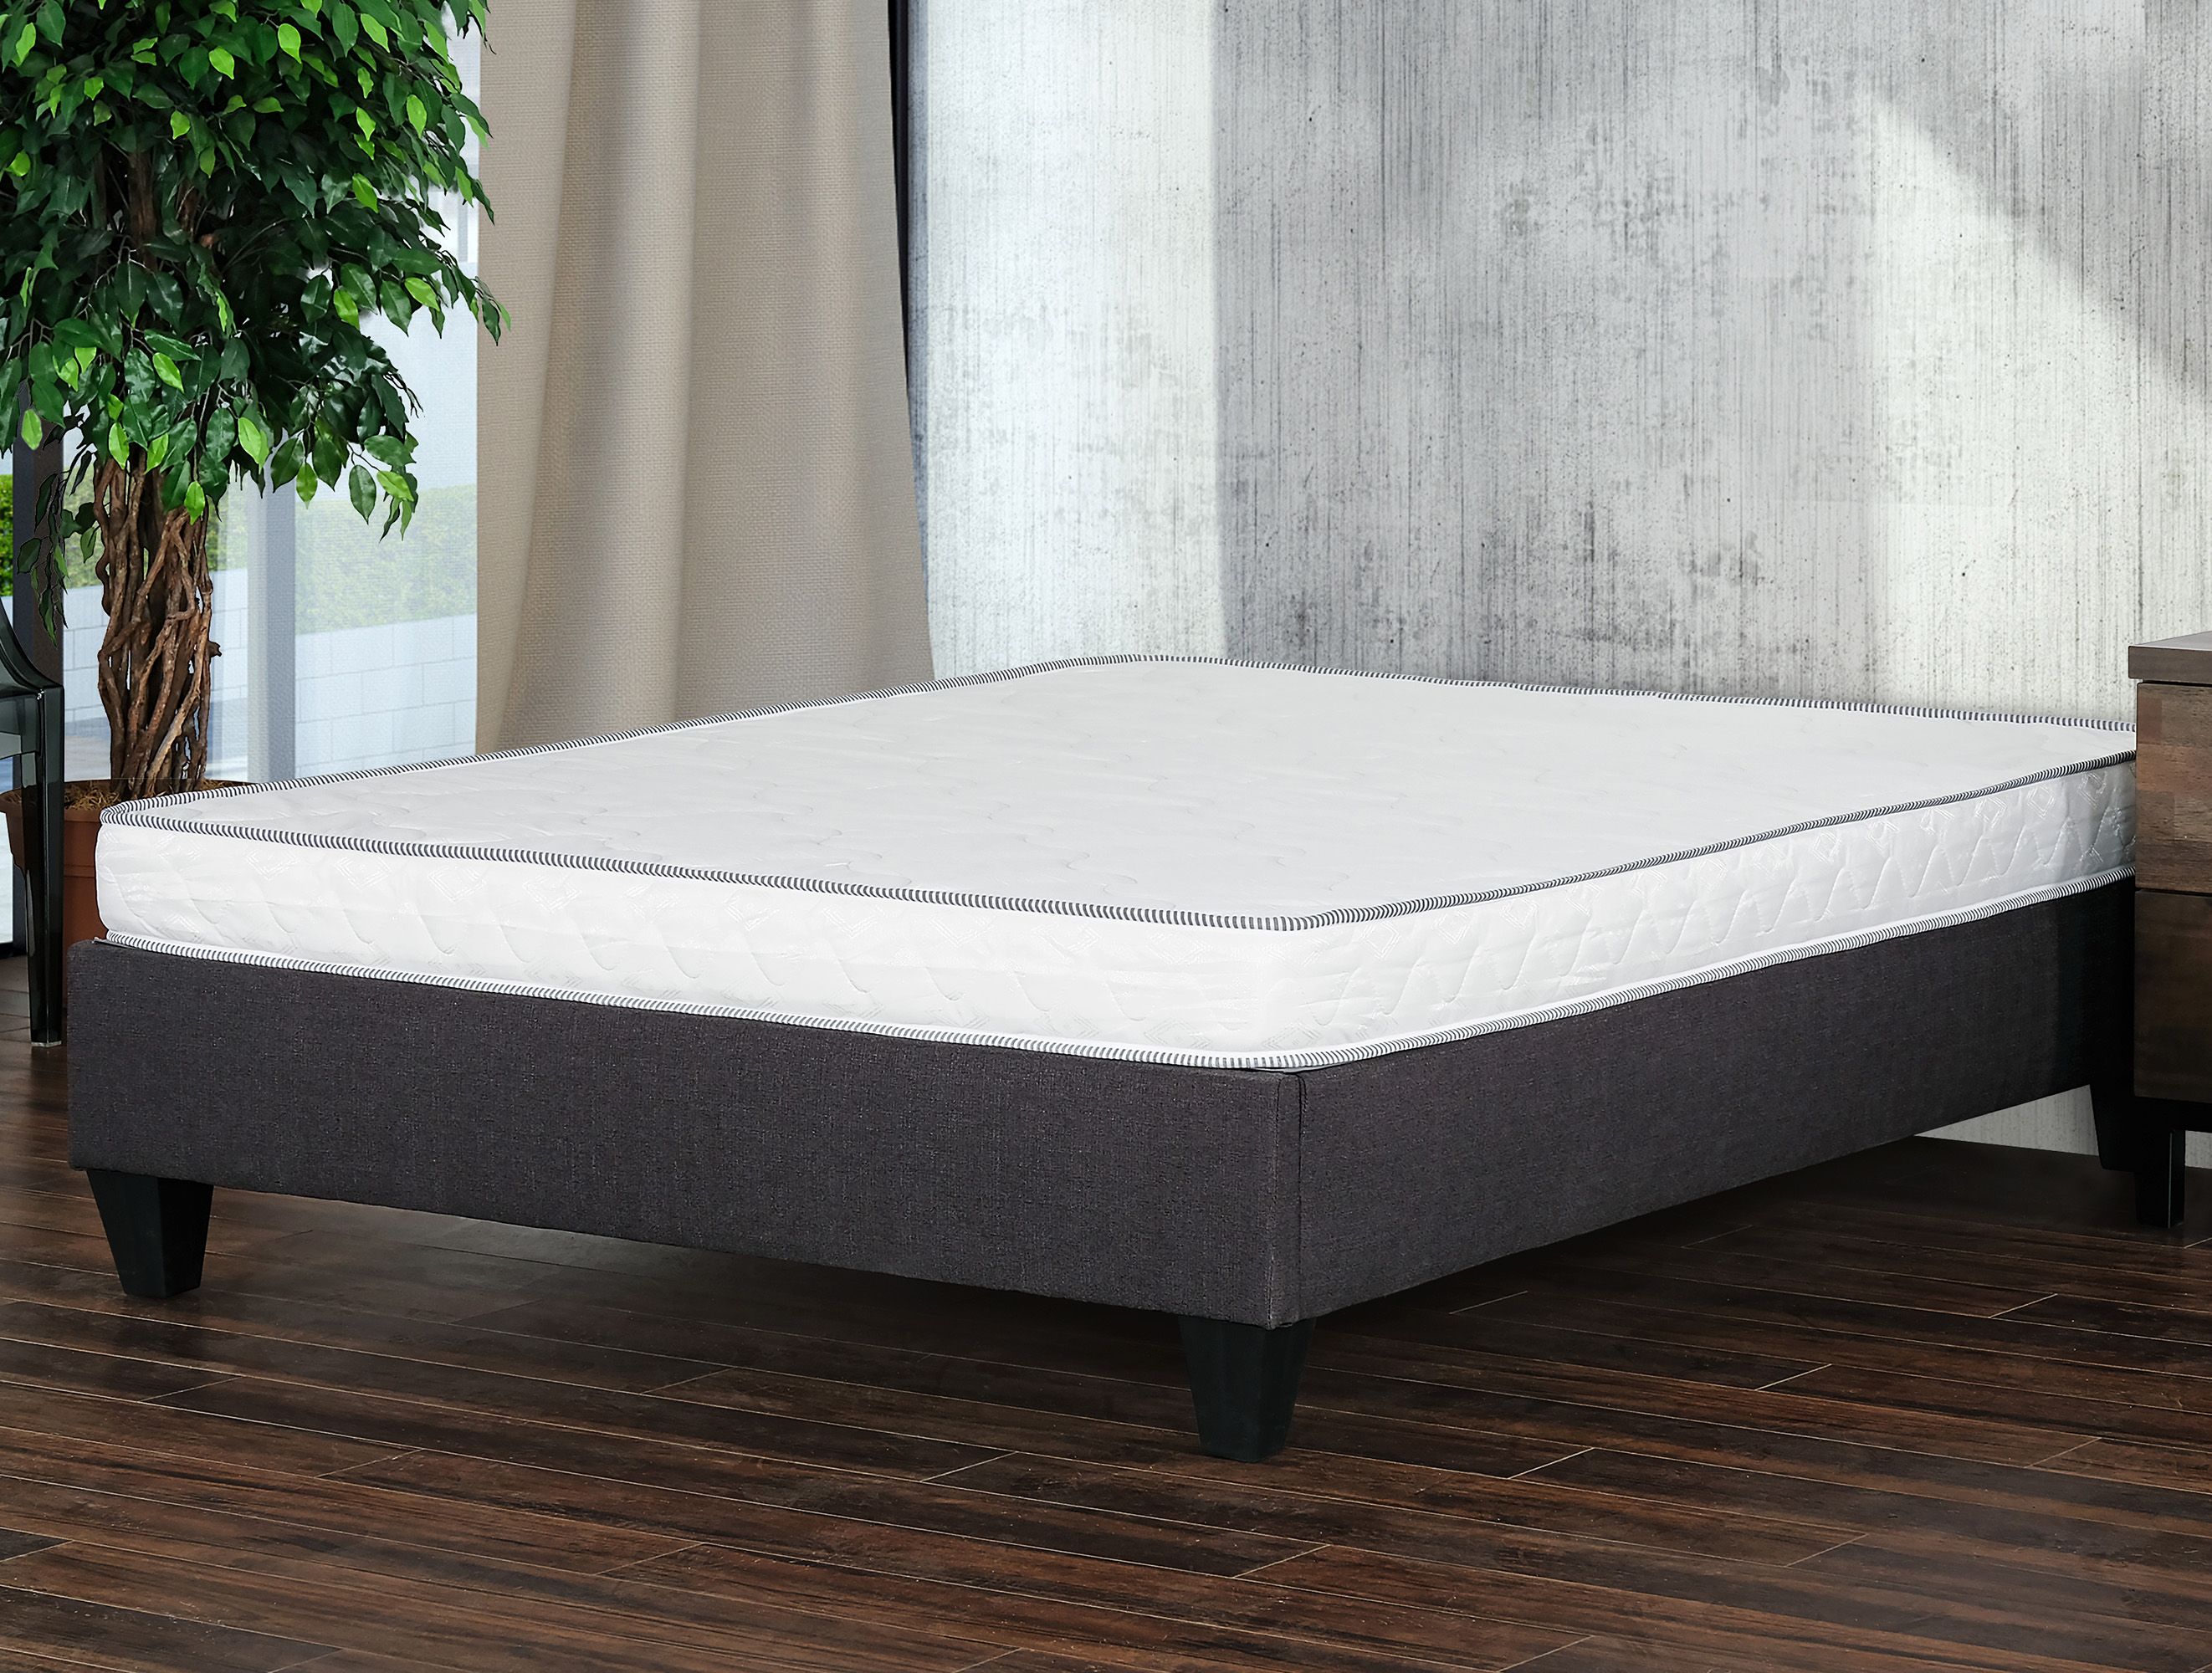 Primo Luna Comfort 6 Foam Mattress Furniture Mattress